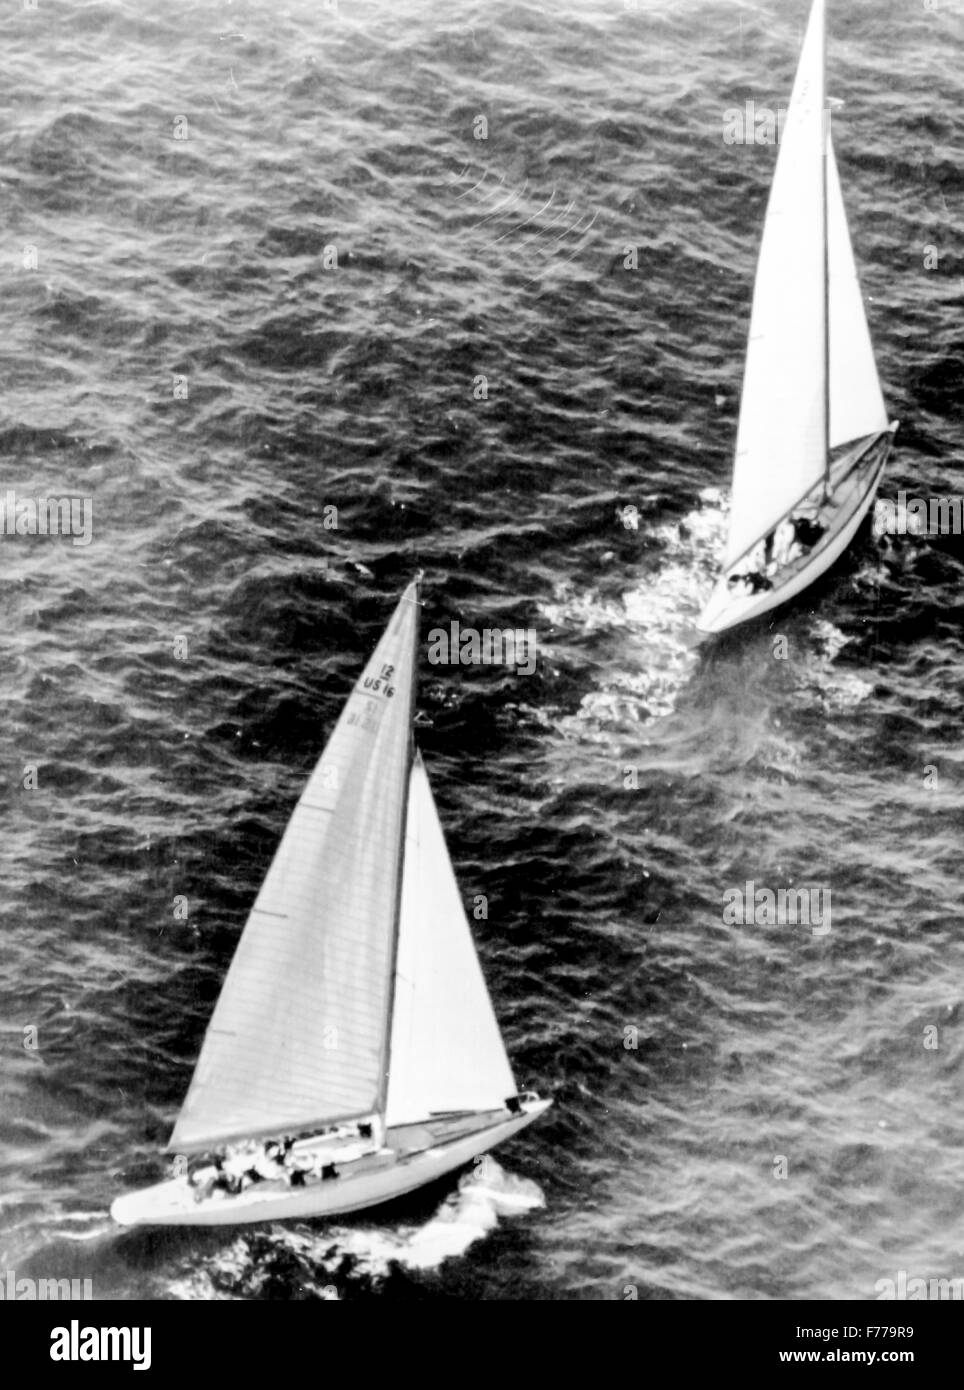 the british boat scepter in the first position and the second Columbia during the America's Cup,newport 1958 - Stock Image